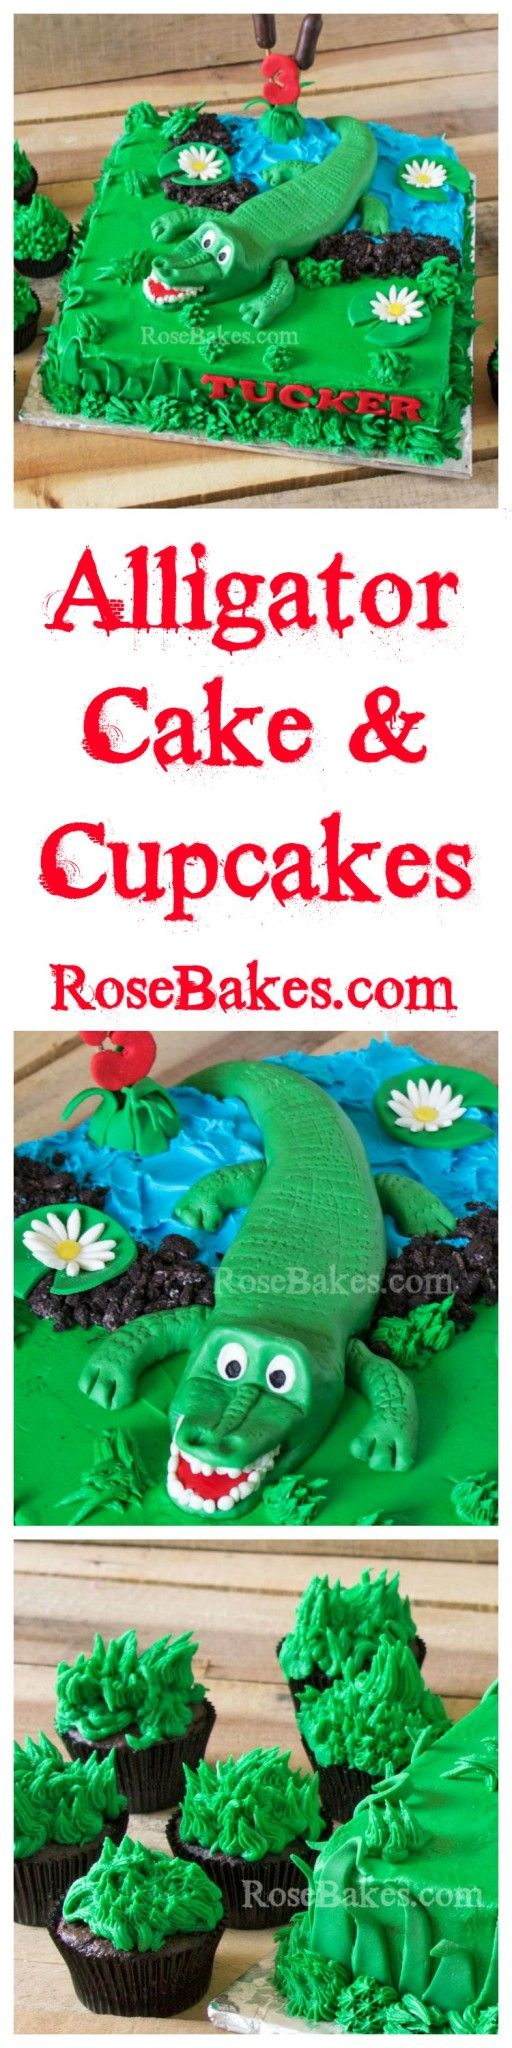 Alligator Cake & Cupcakes by Rose Bakes